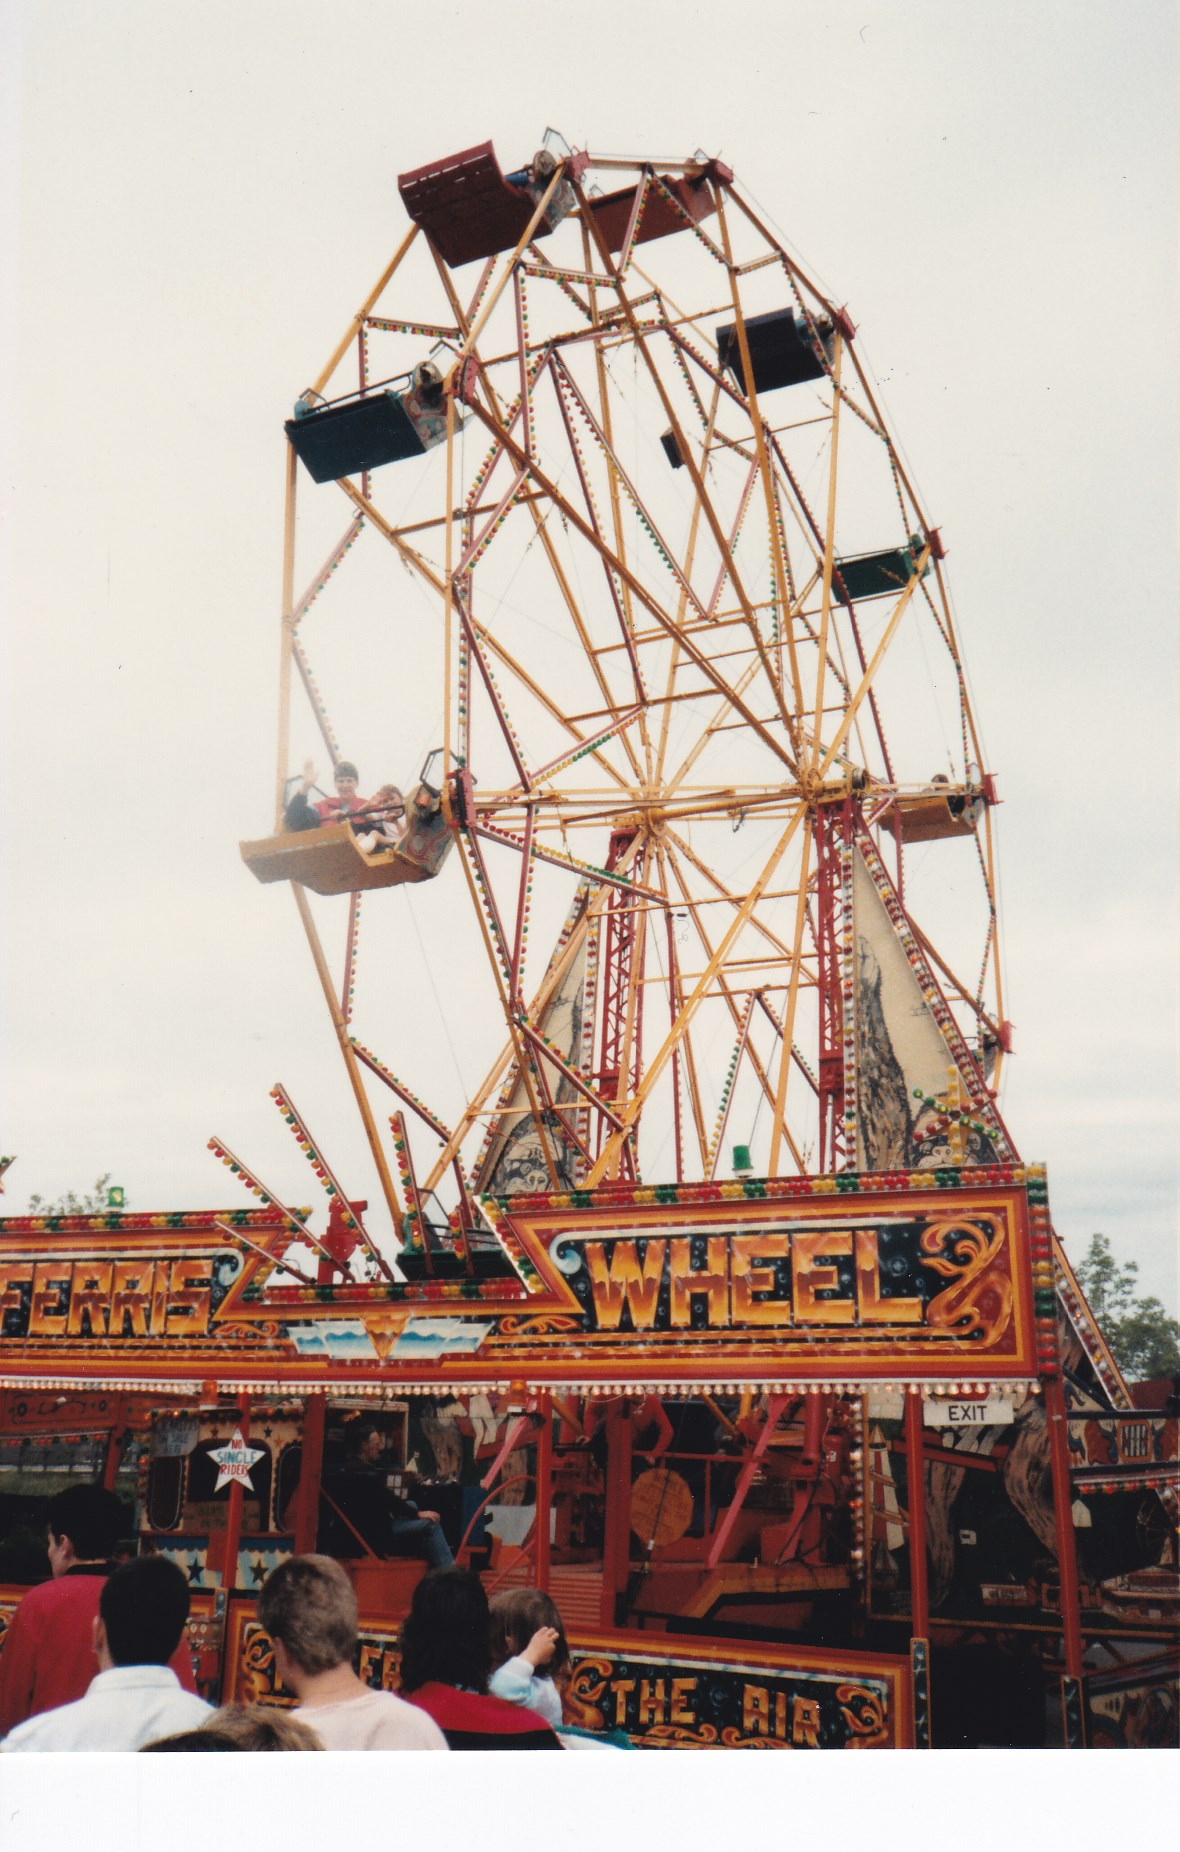 Daniel and Debbie on the Ferris Wheel at the St Neots Riverside Park Fair on this day